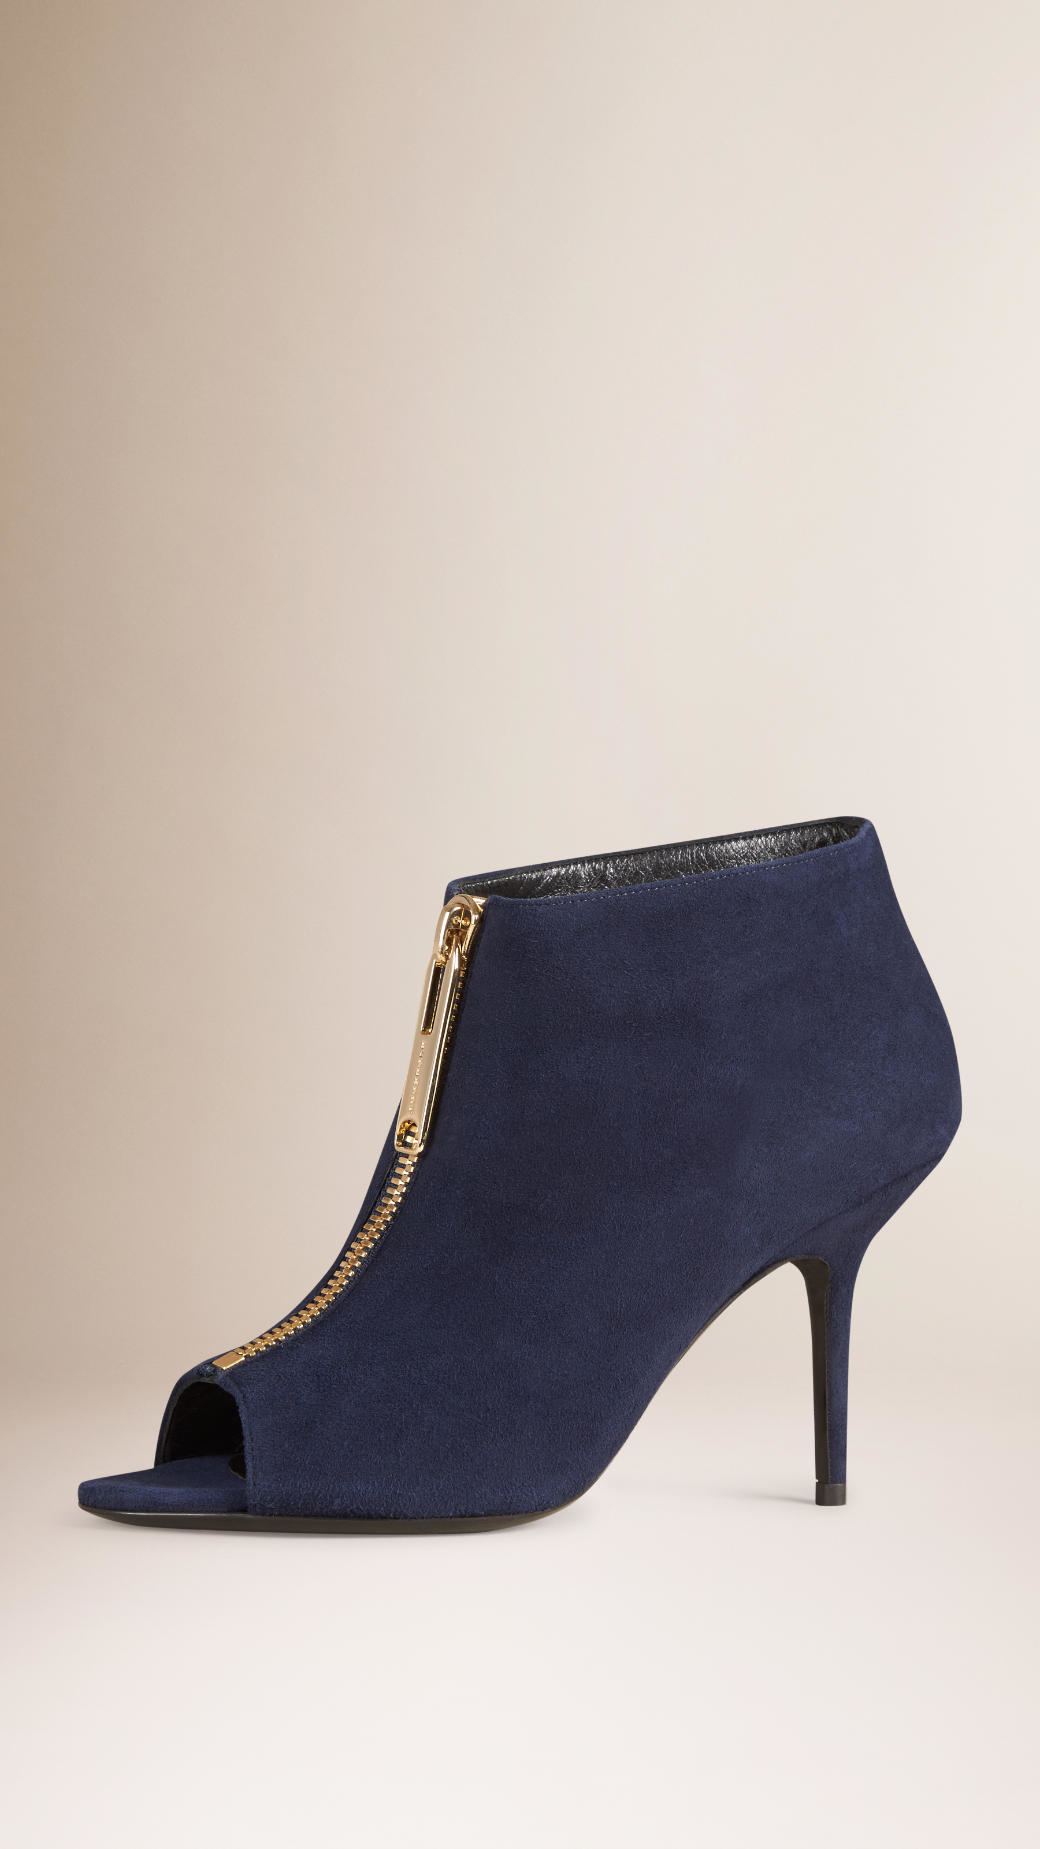 burberry peep toe suede ankle boots in blue navy lyst